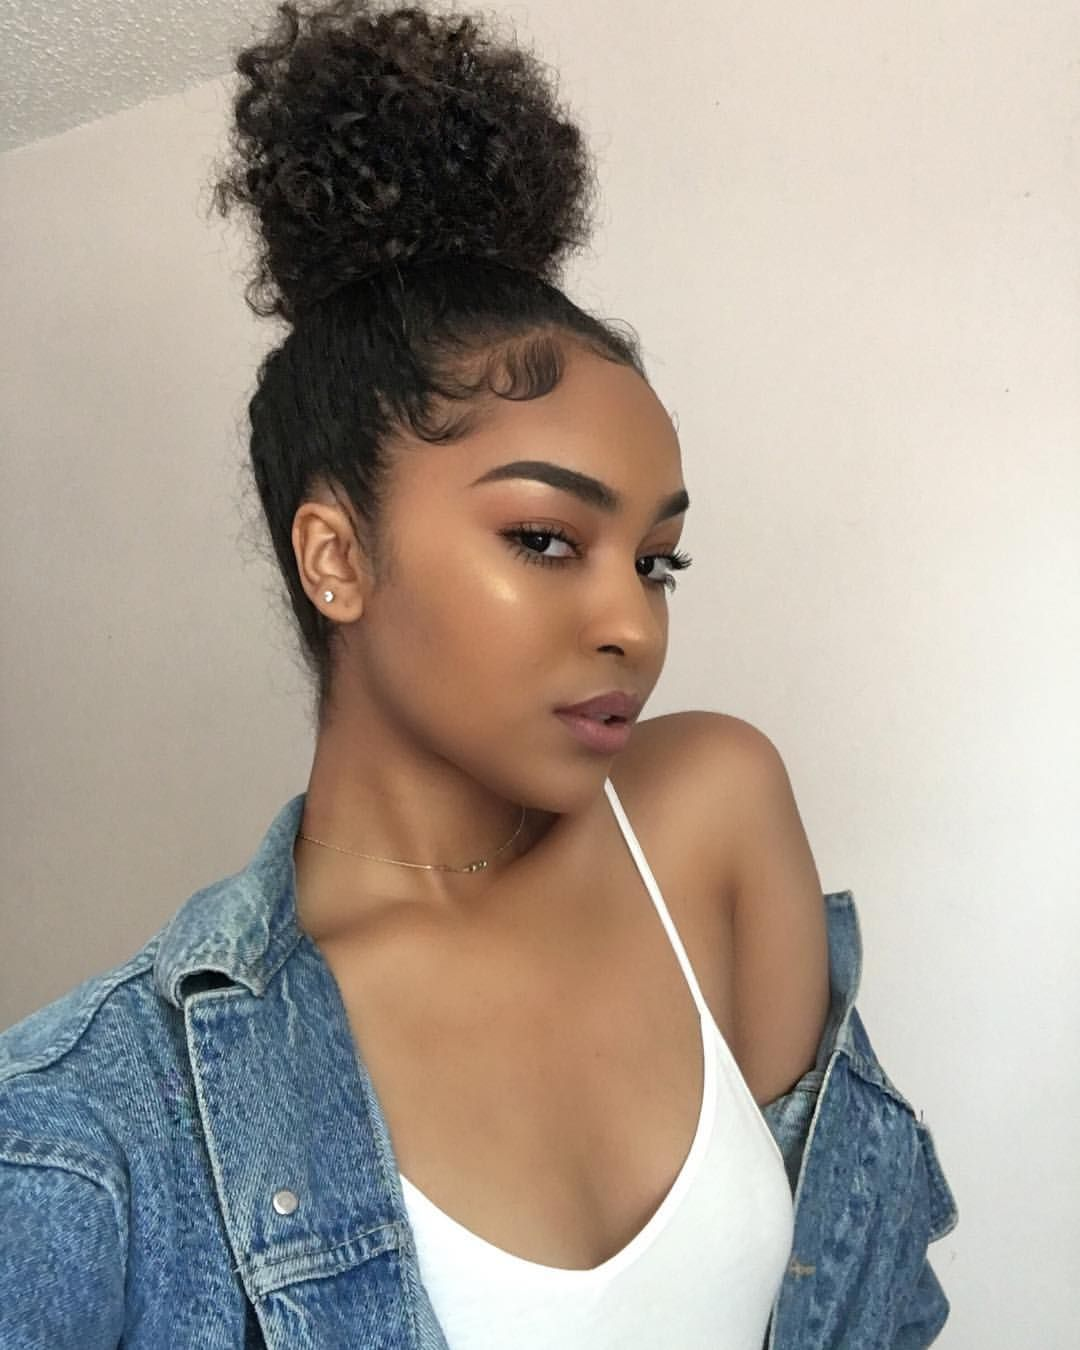 Pin by nini on makeup pinterest baddies hair laid and makeup goals